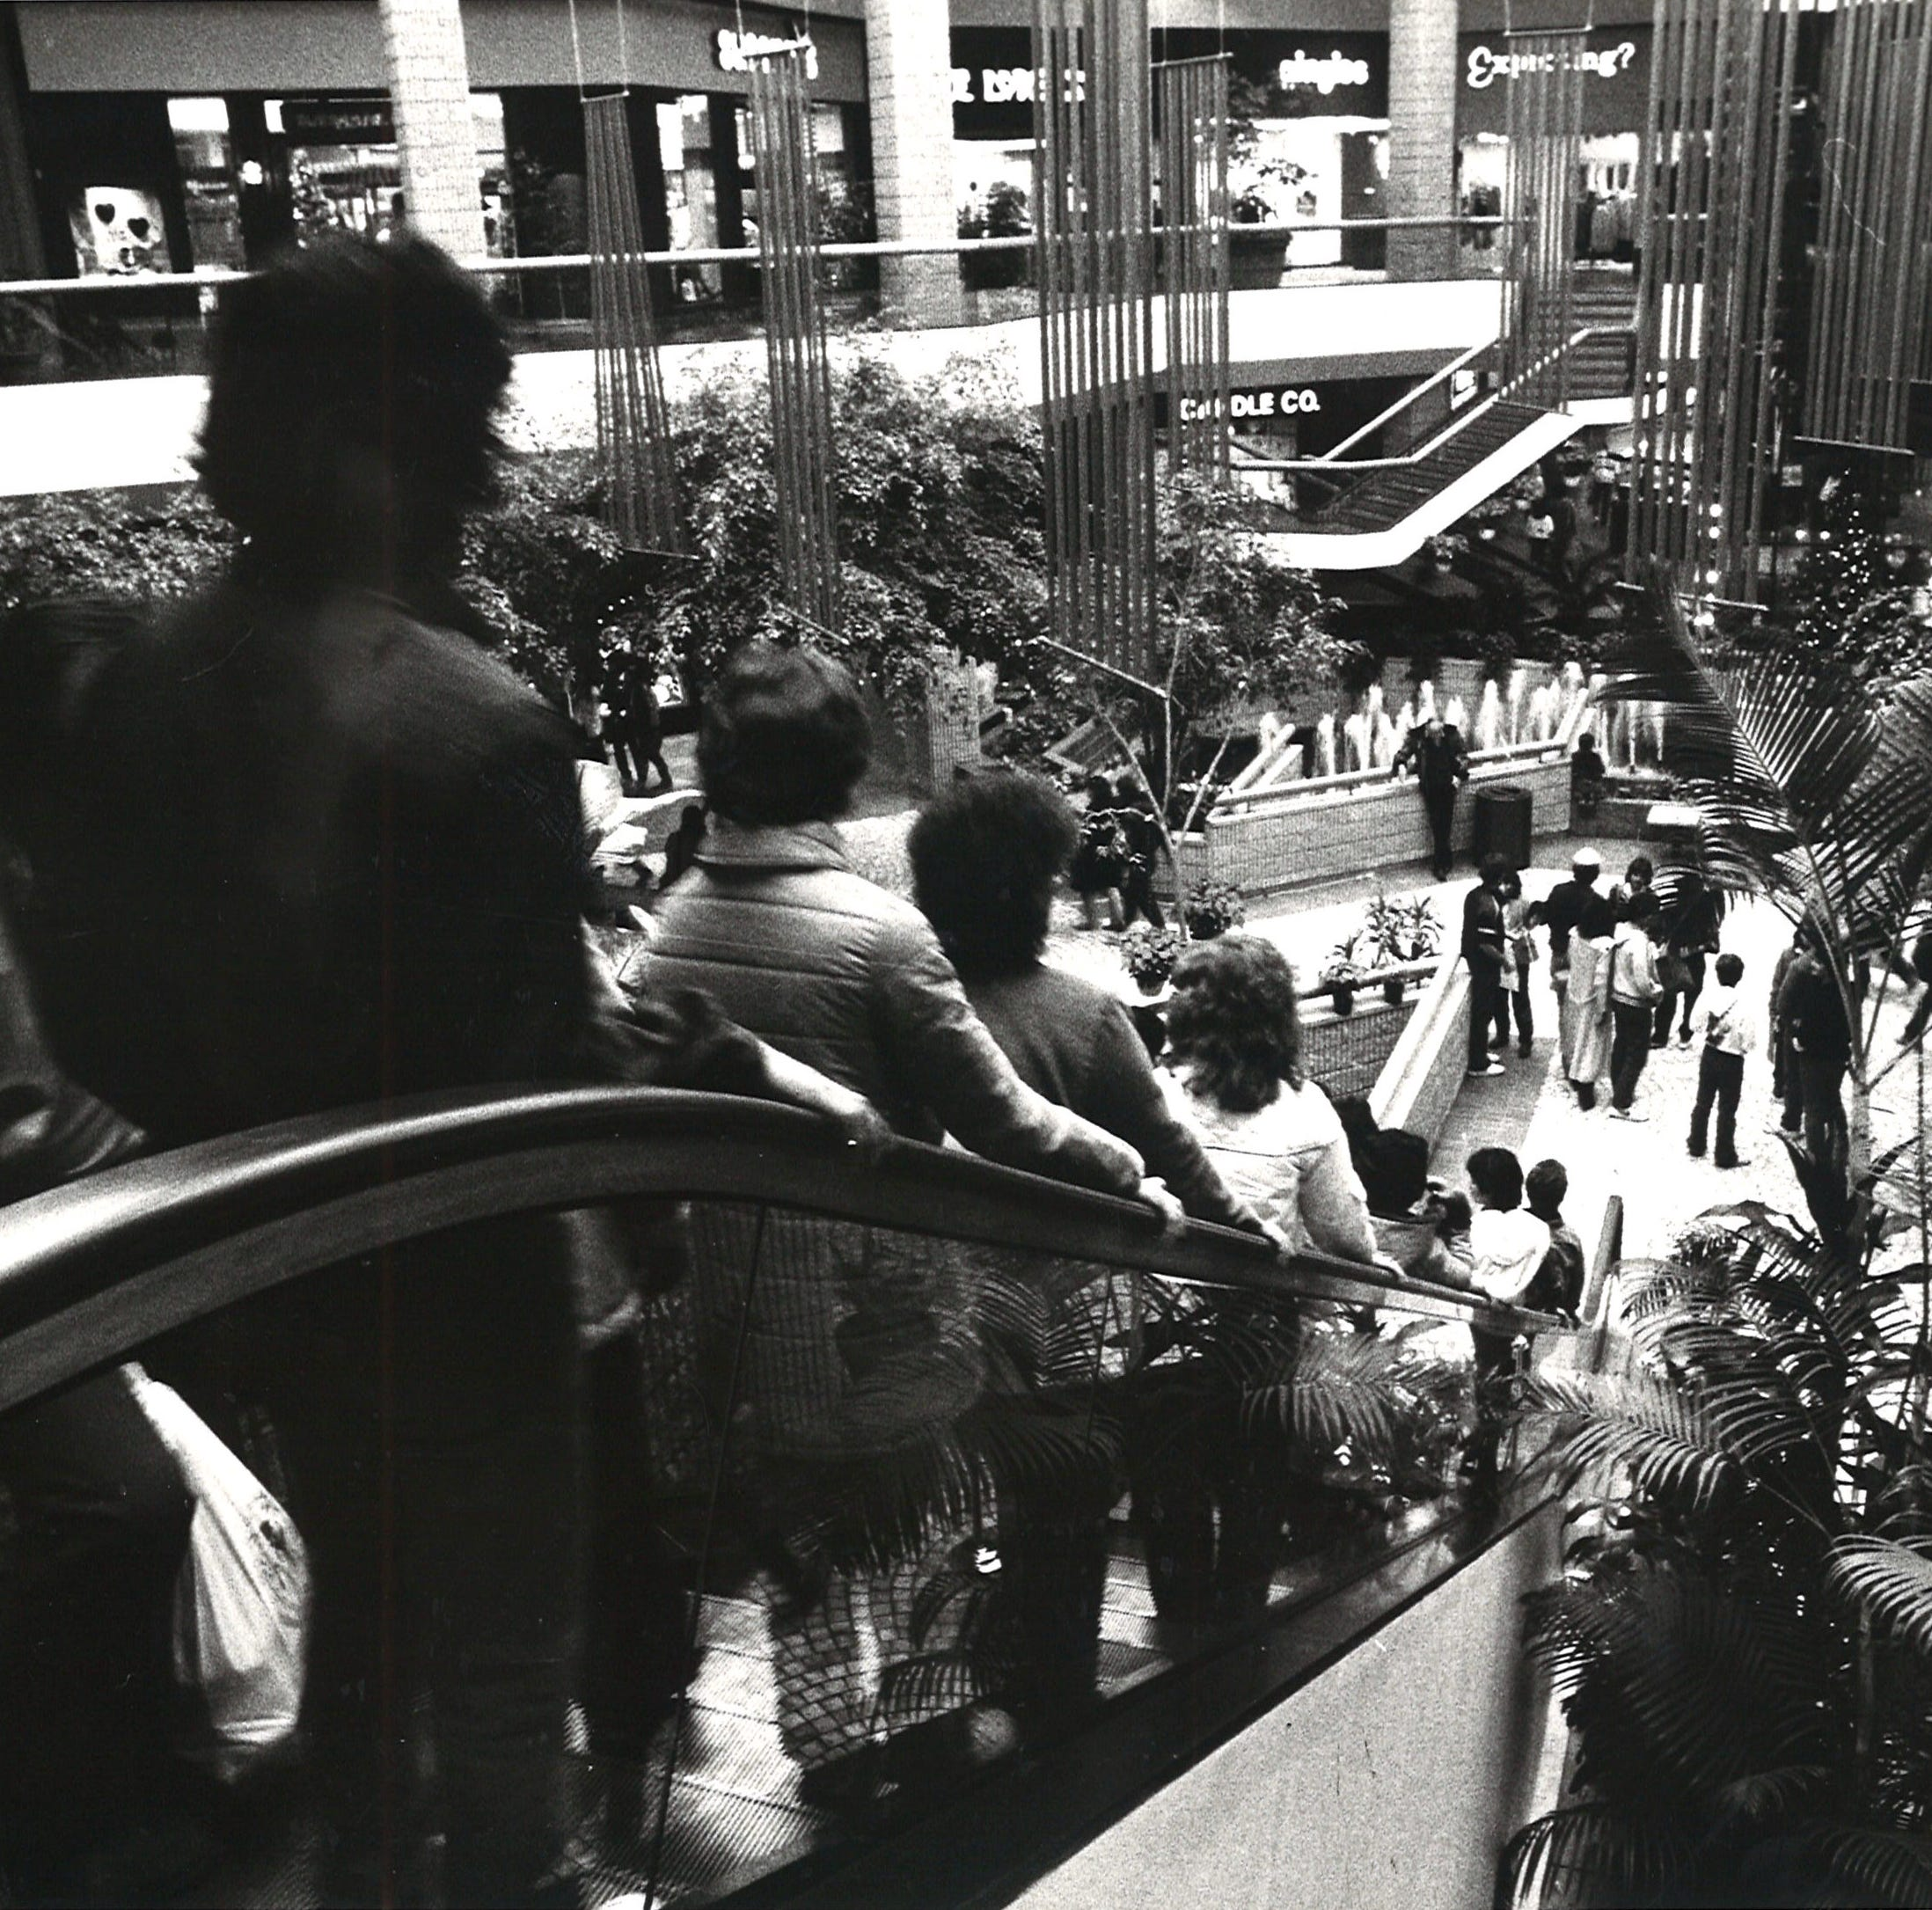 #TBT: Corpus Christi's Sunrise Mall was once a thriving shopping center